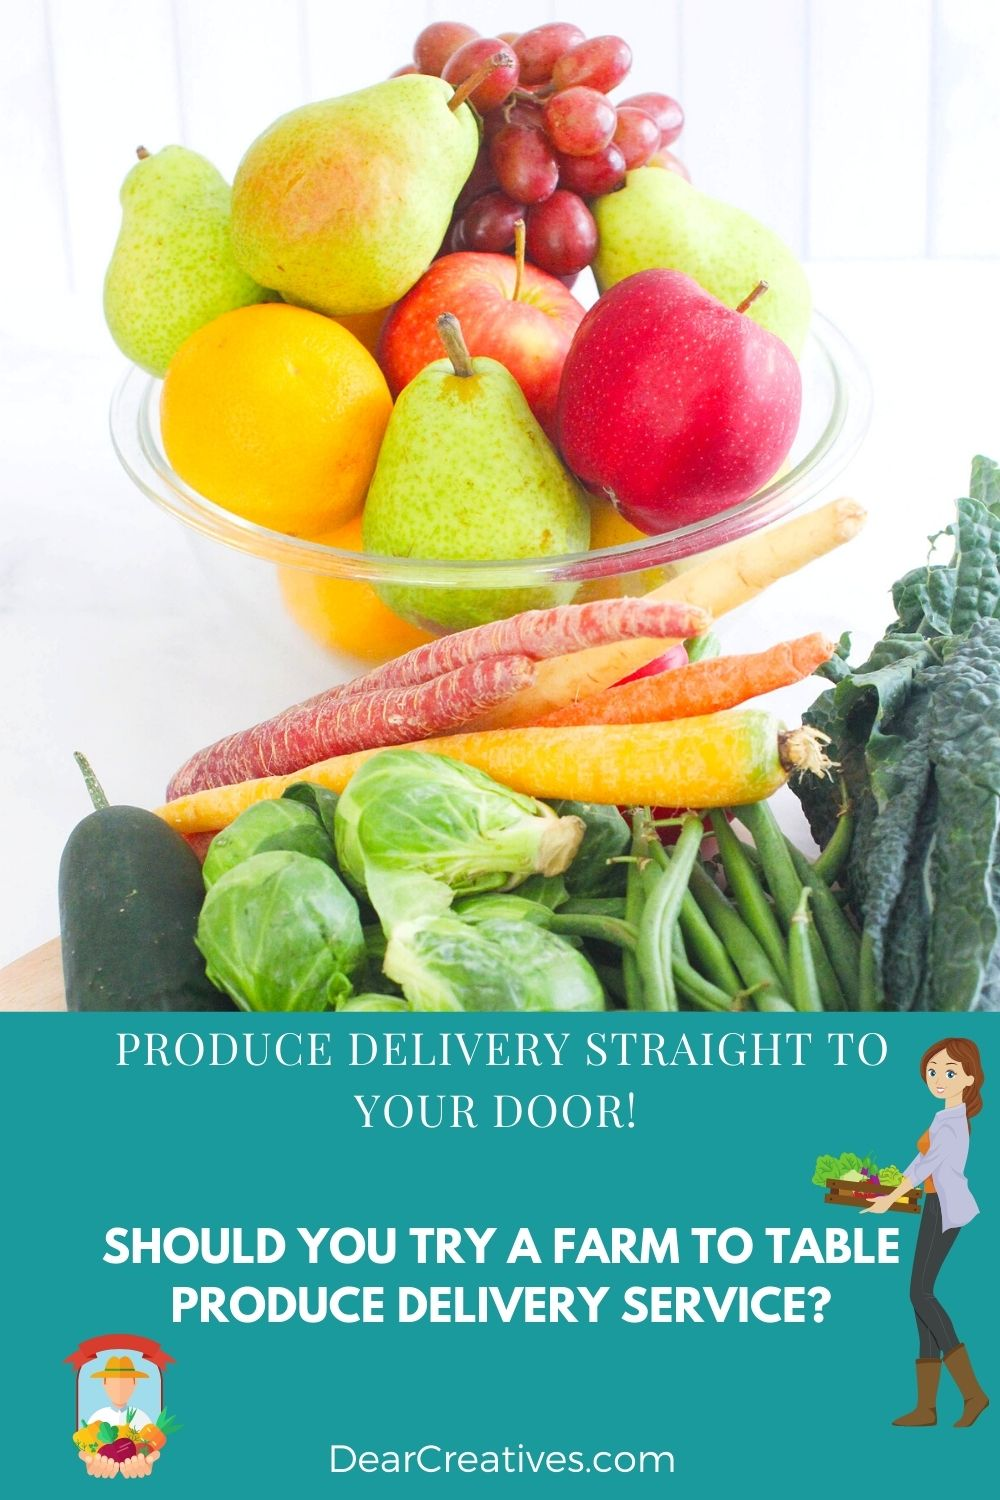 Farmbox Direct Produce Delivery Service